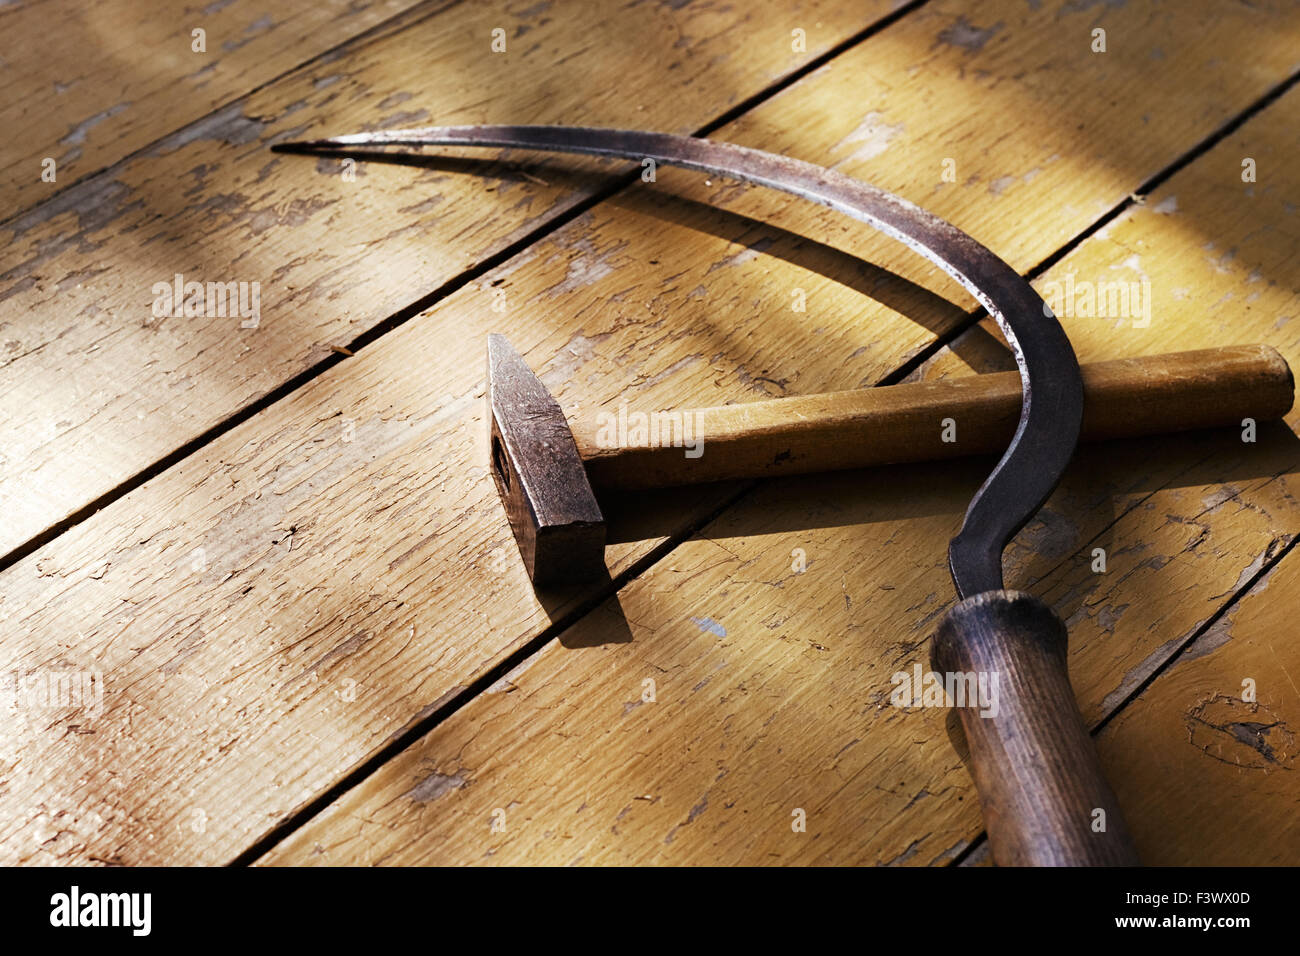 Sickle and hammer - Stock Image